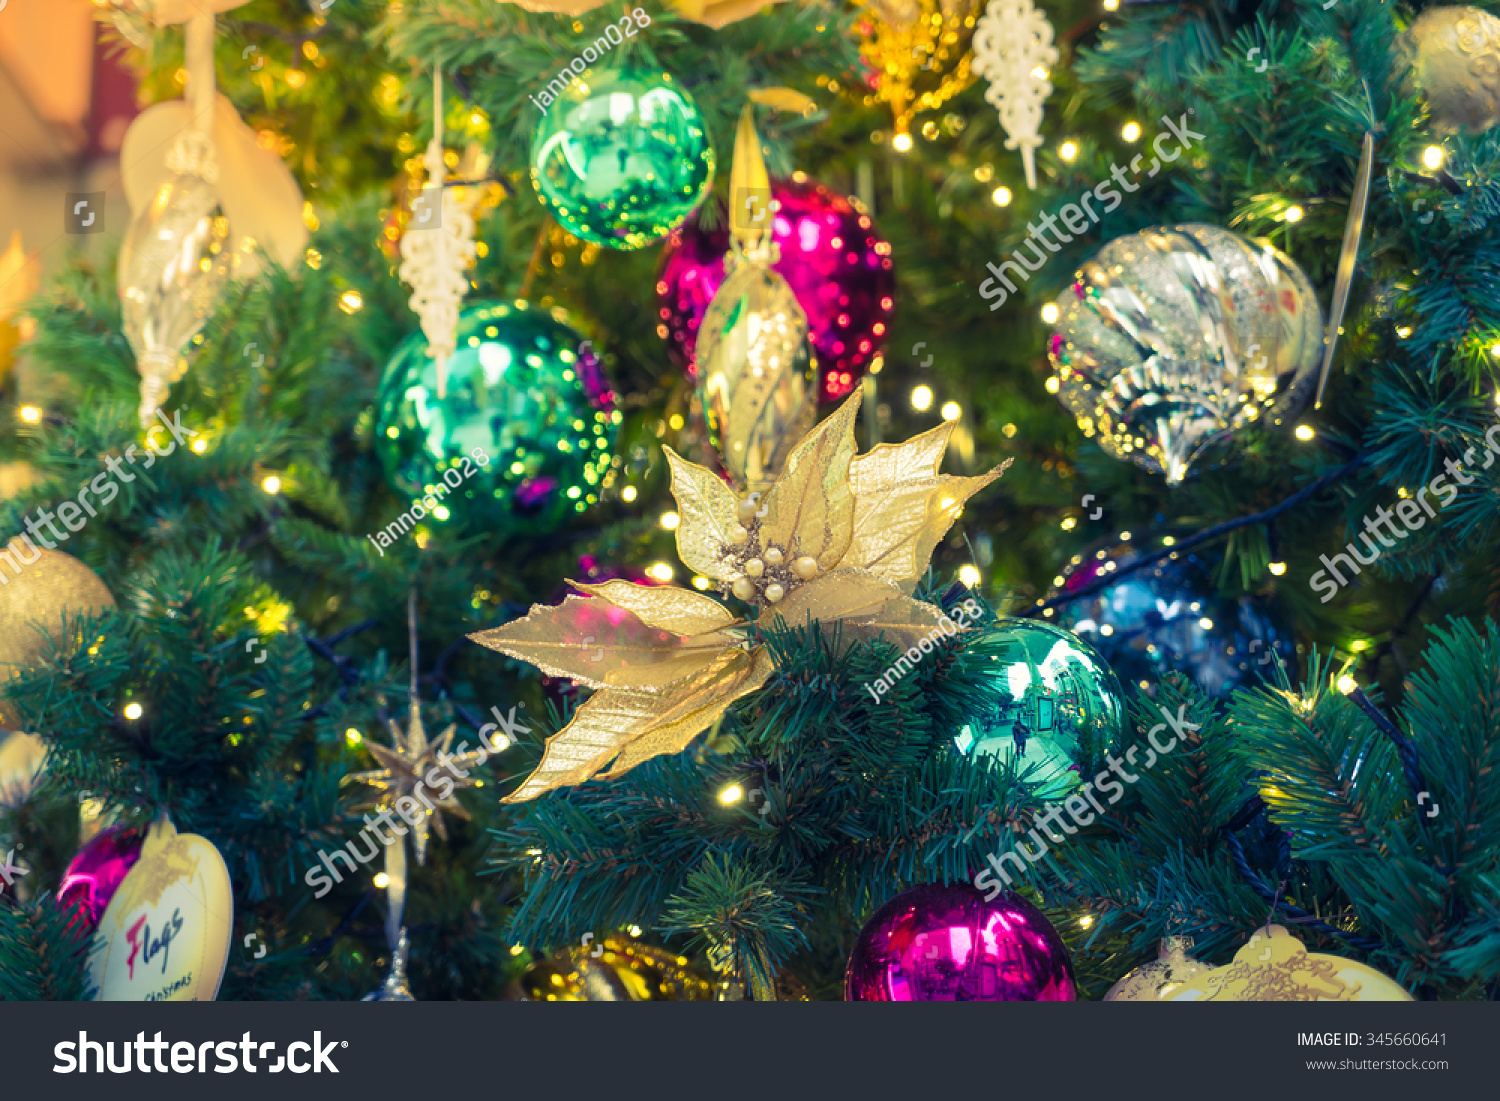 Closeup Of Christmas Tree Decorations Background Filtered Image Processed Vintage Effect